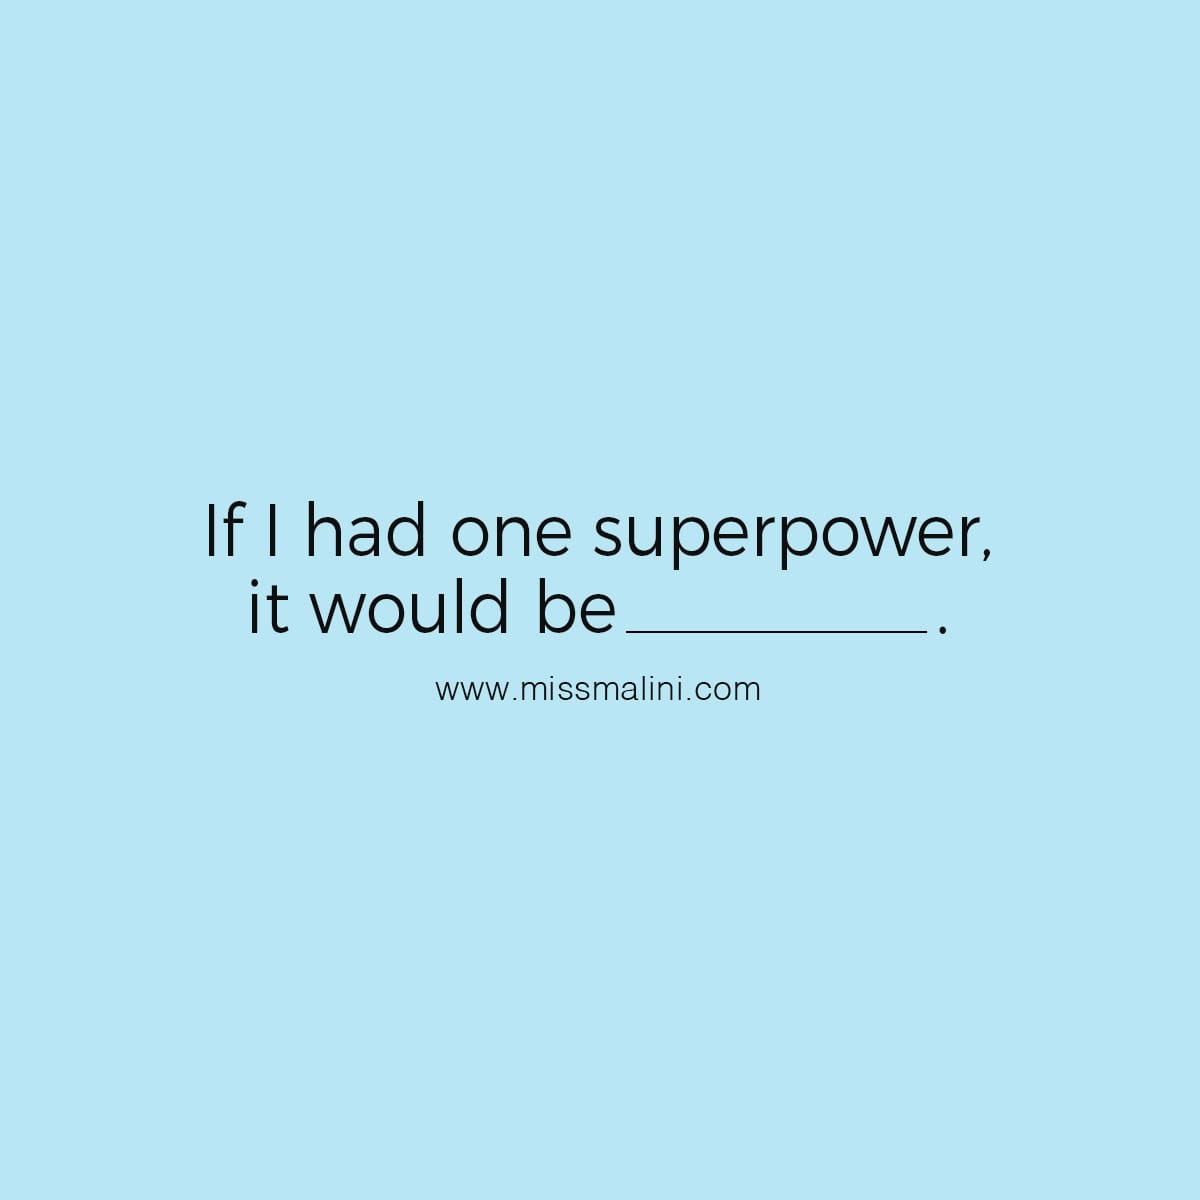 If I had one superpower it would be reading people's minds and always knowing what they're thinking. That would be super cool! 💬😎 What would you want your superpower to be? - Nishita Rohera, Community Manager.